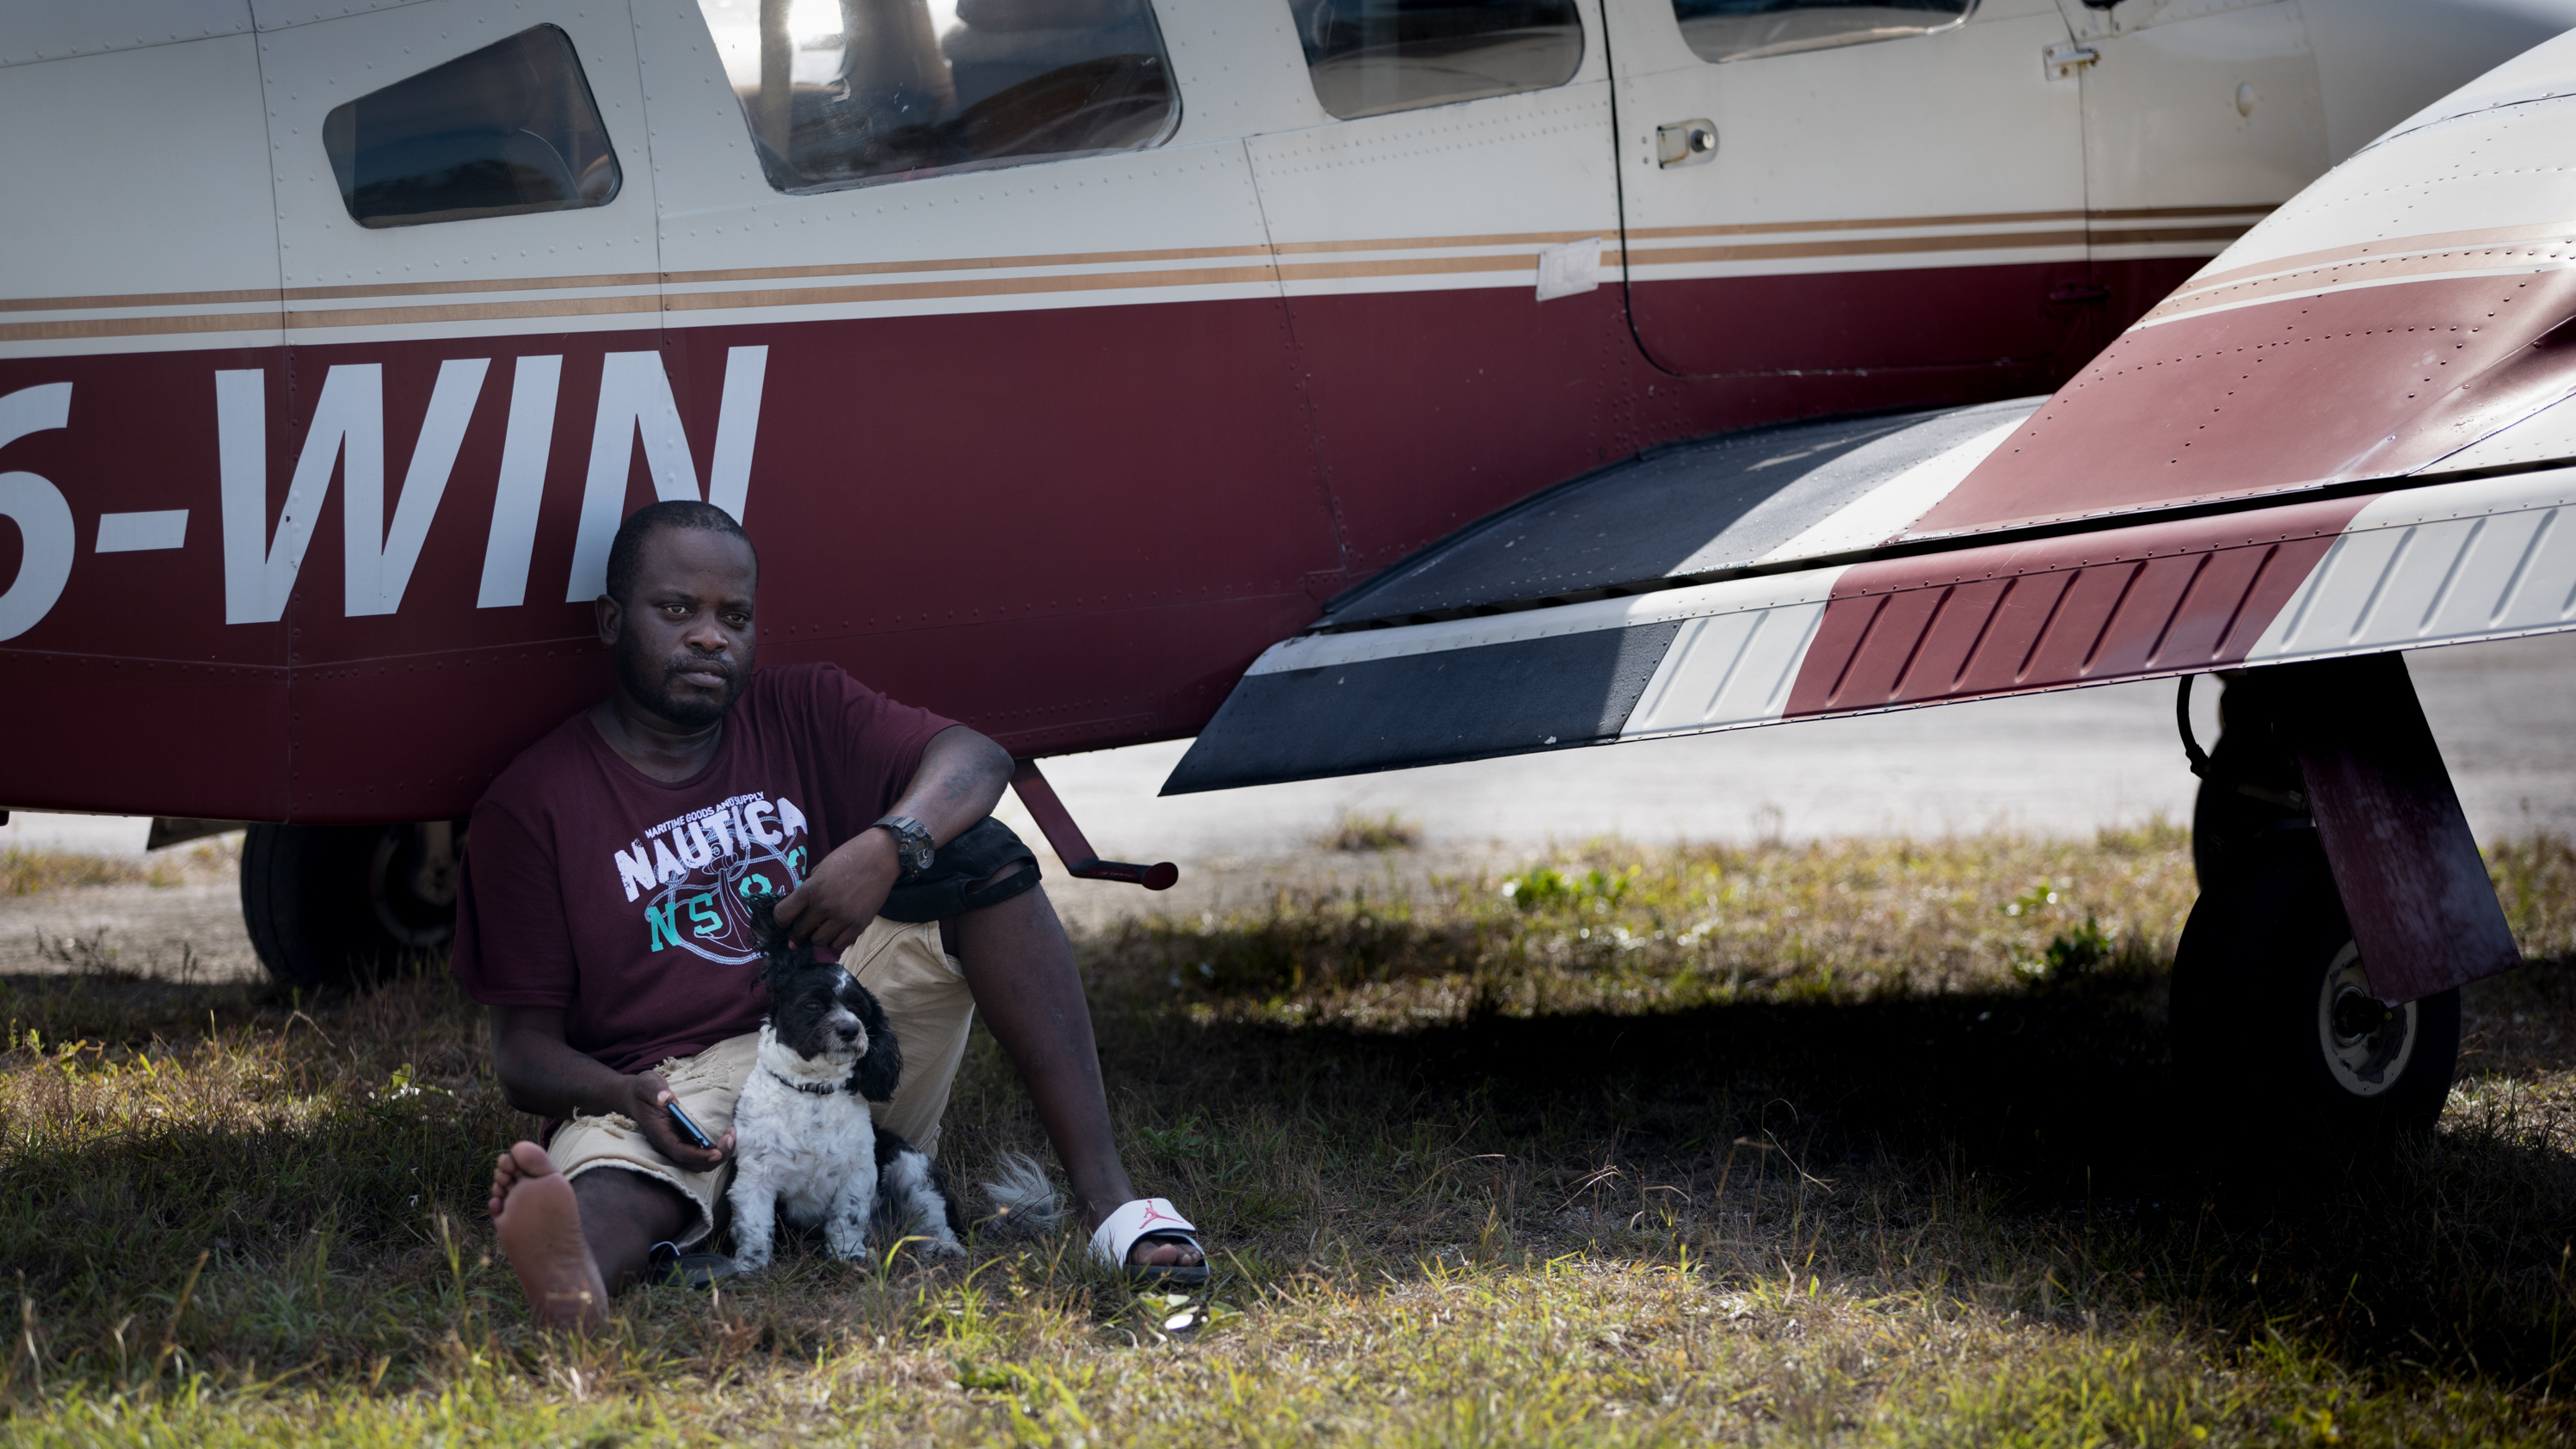 'You Can't Stay Here': Dorian Leaves Parts Of The Bahamas Uninhabitable